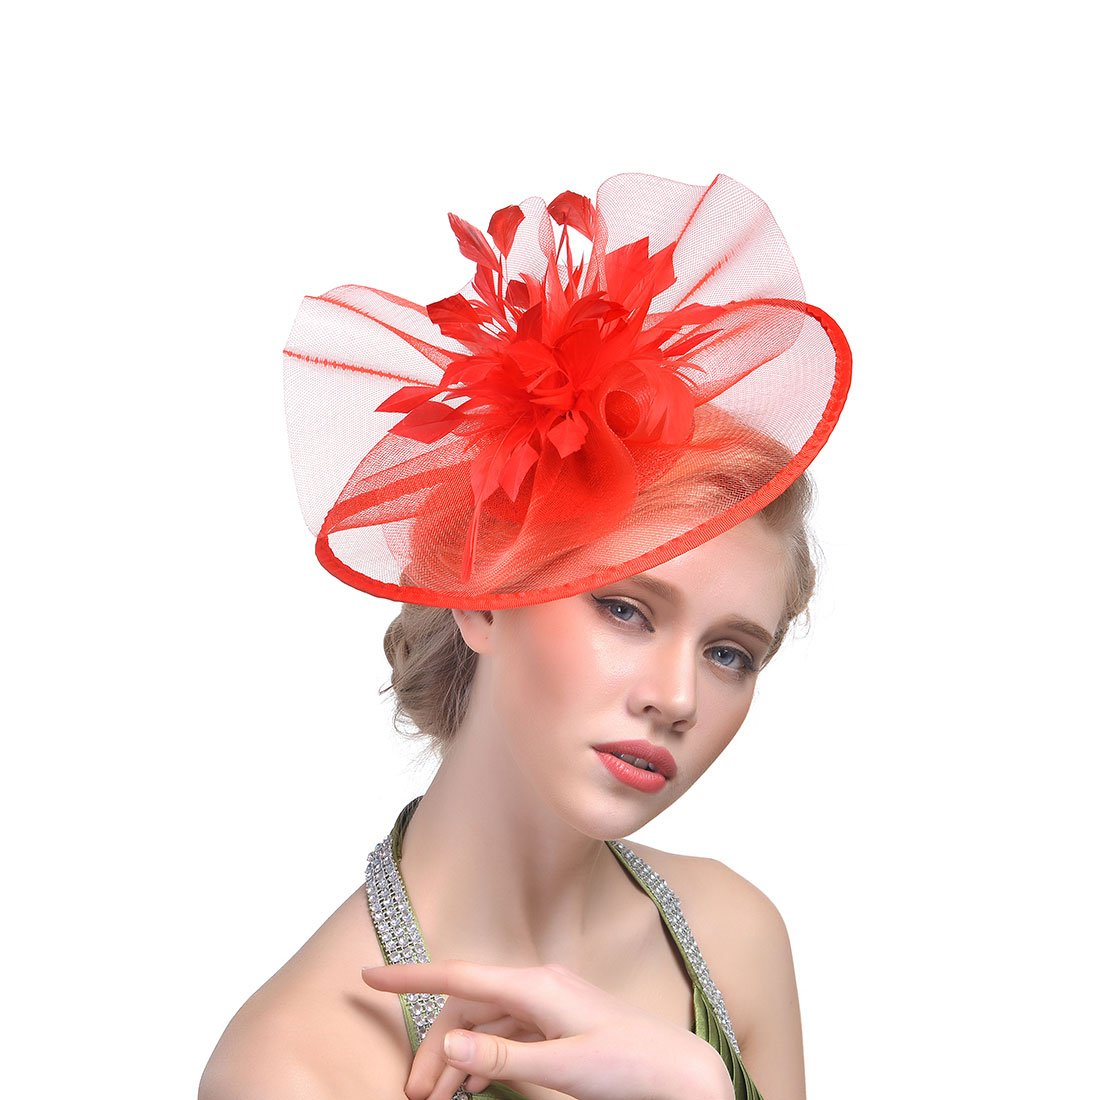 30th floor Womens Formal Party Fascinator Hat Headband Wedding Hats